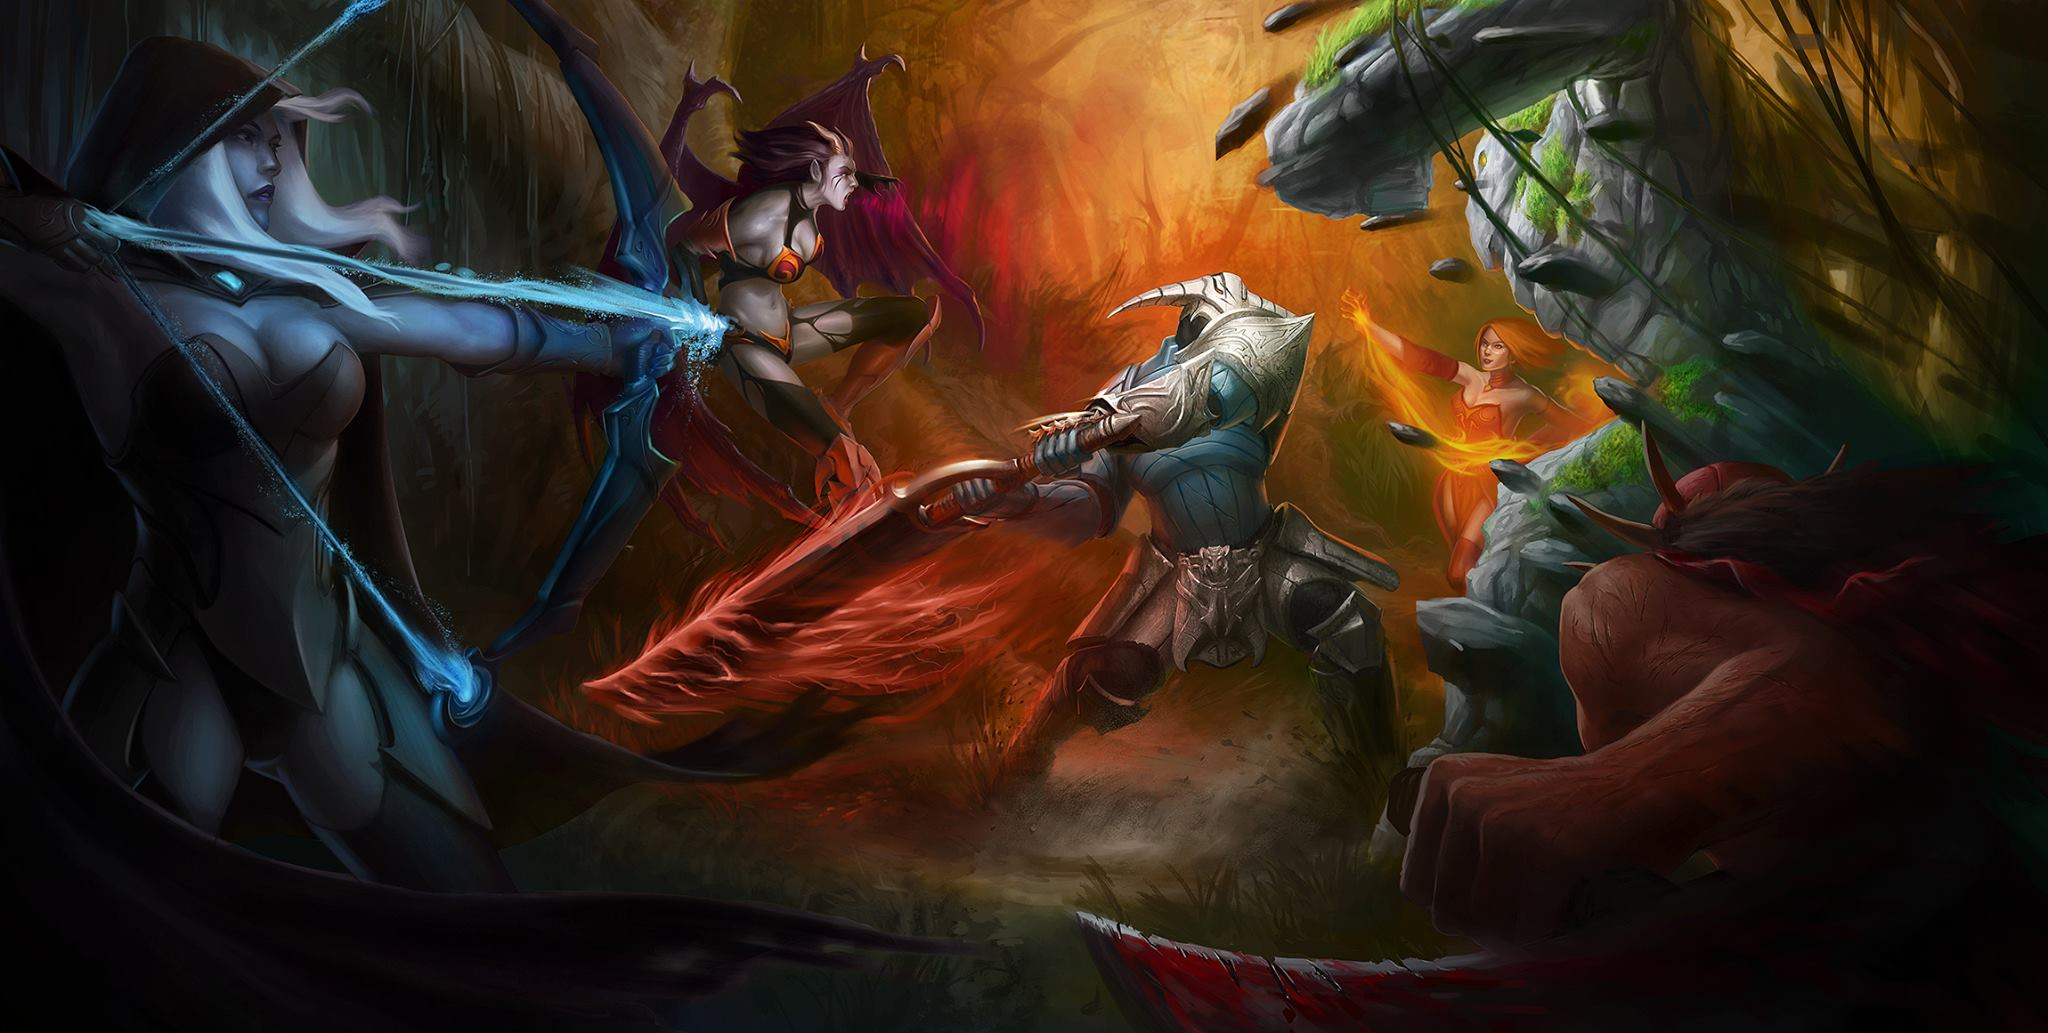 free dota 2 wallpaper 22950 2048x1033 px hdwallsource com